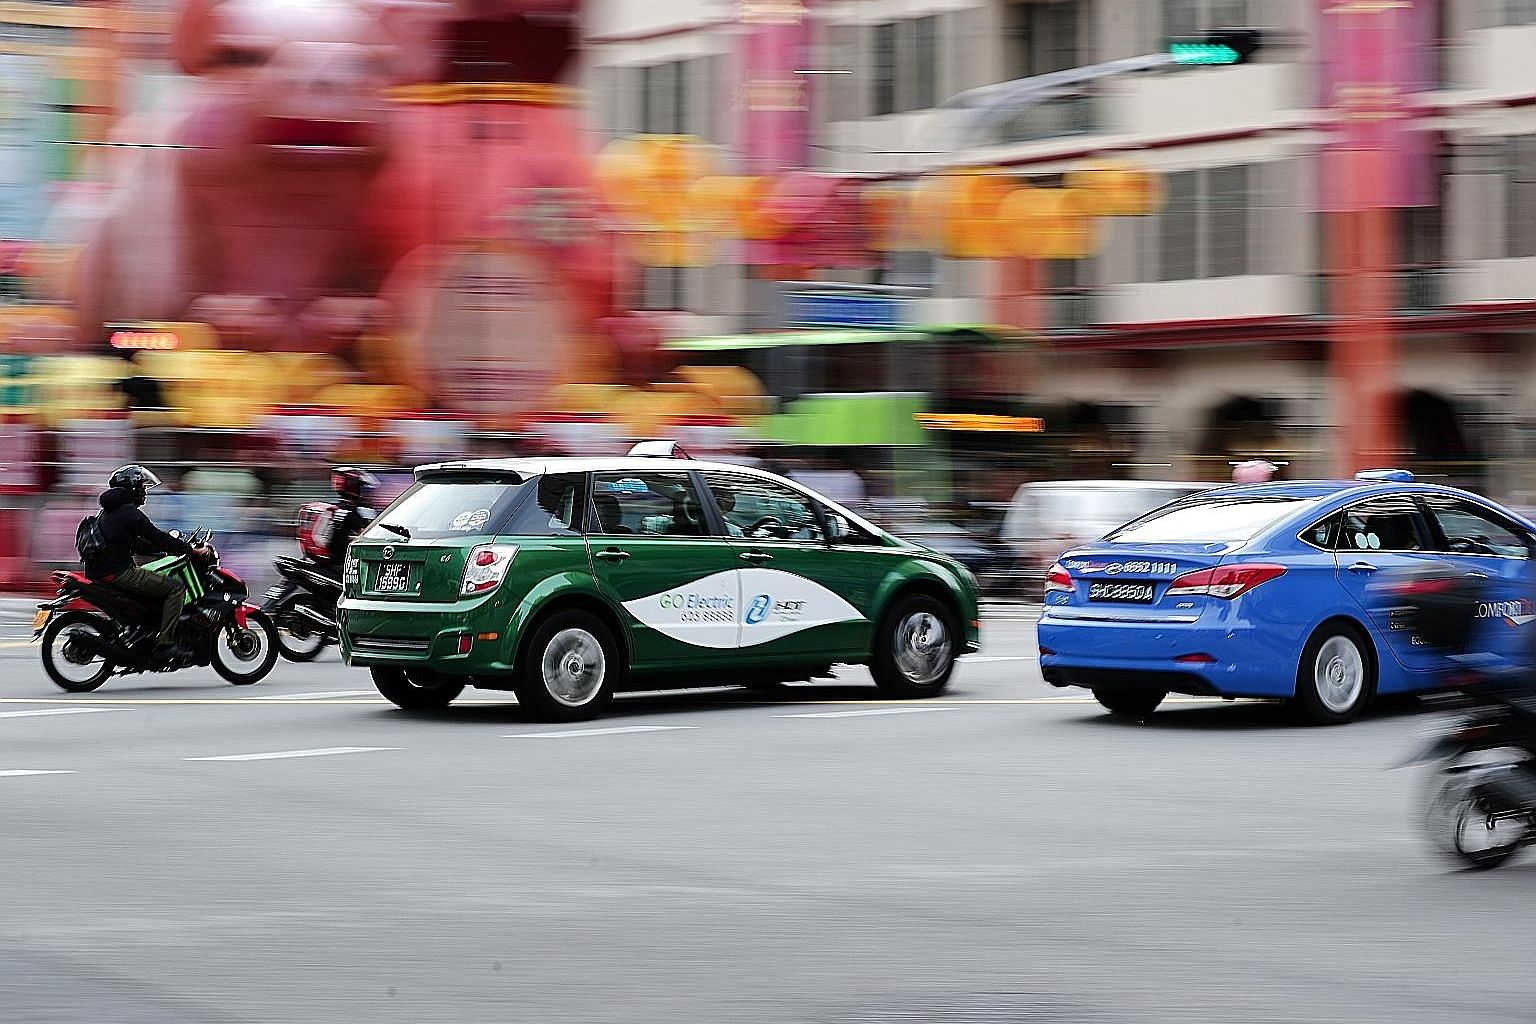 Senior Minister of State for Transport Janil Puthucheary disclosed that Singapore now has about 20,000 taxis and 45,000 private-hire cars. Operators with at least 800 vehicles on their platform must apply for a licence.